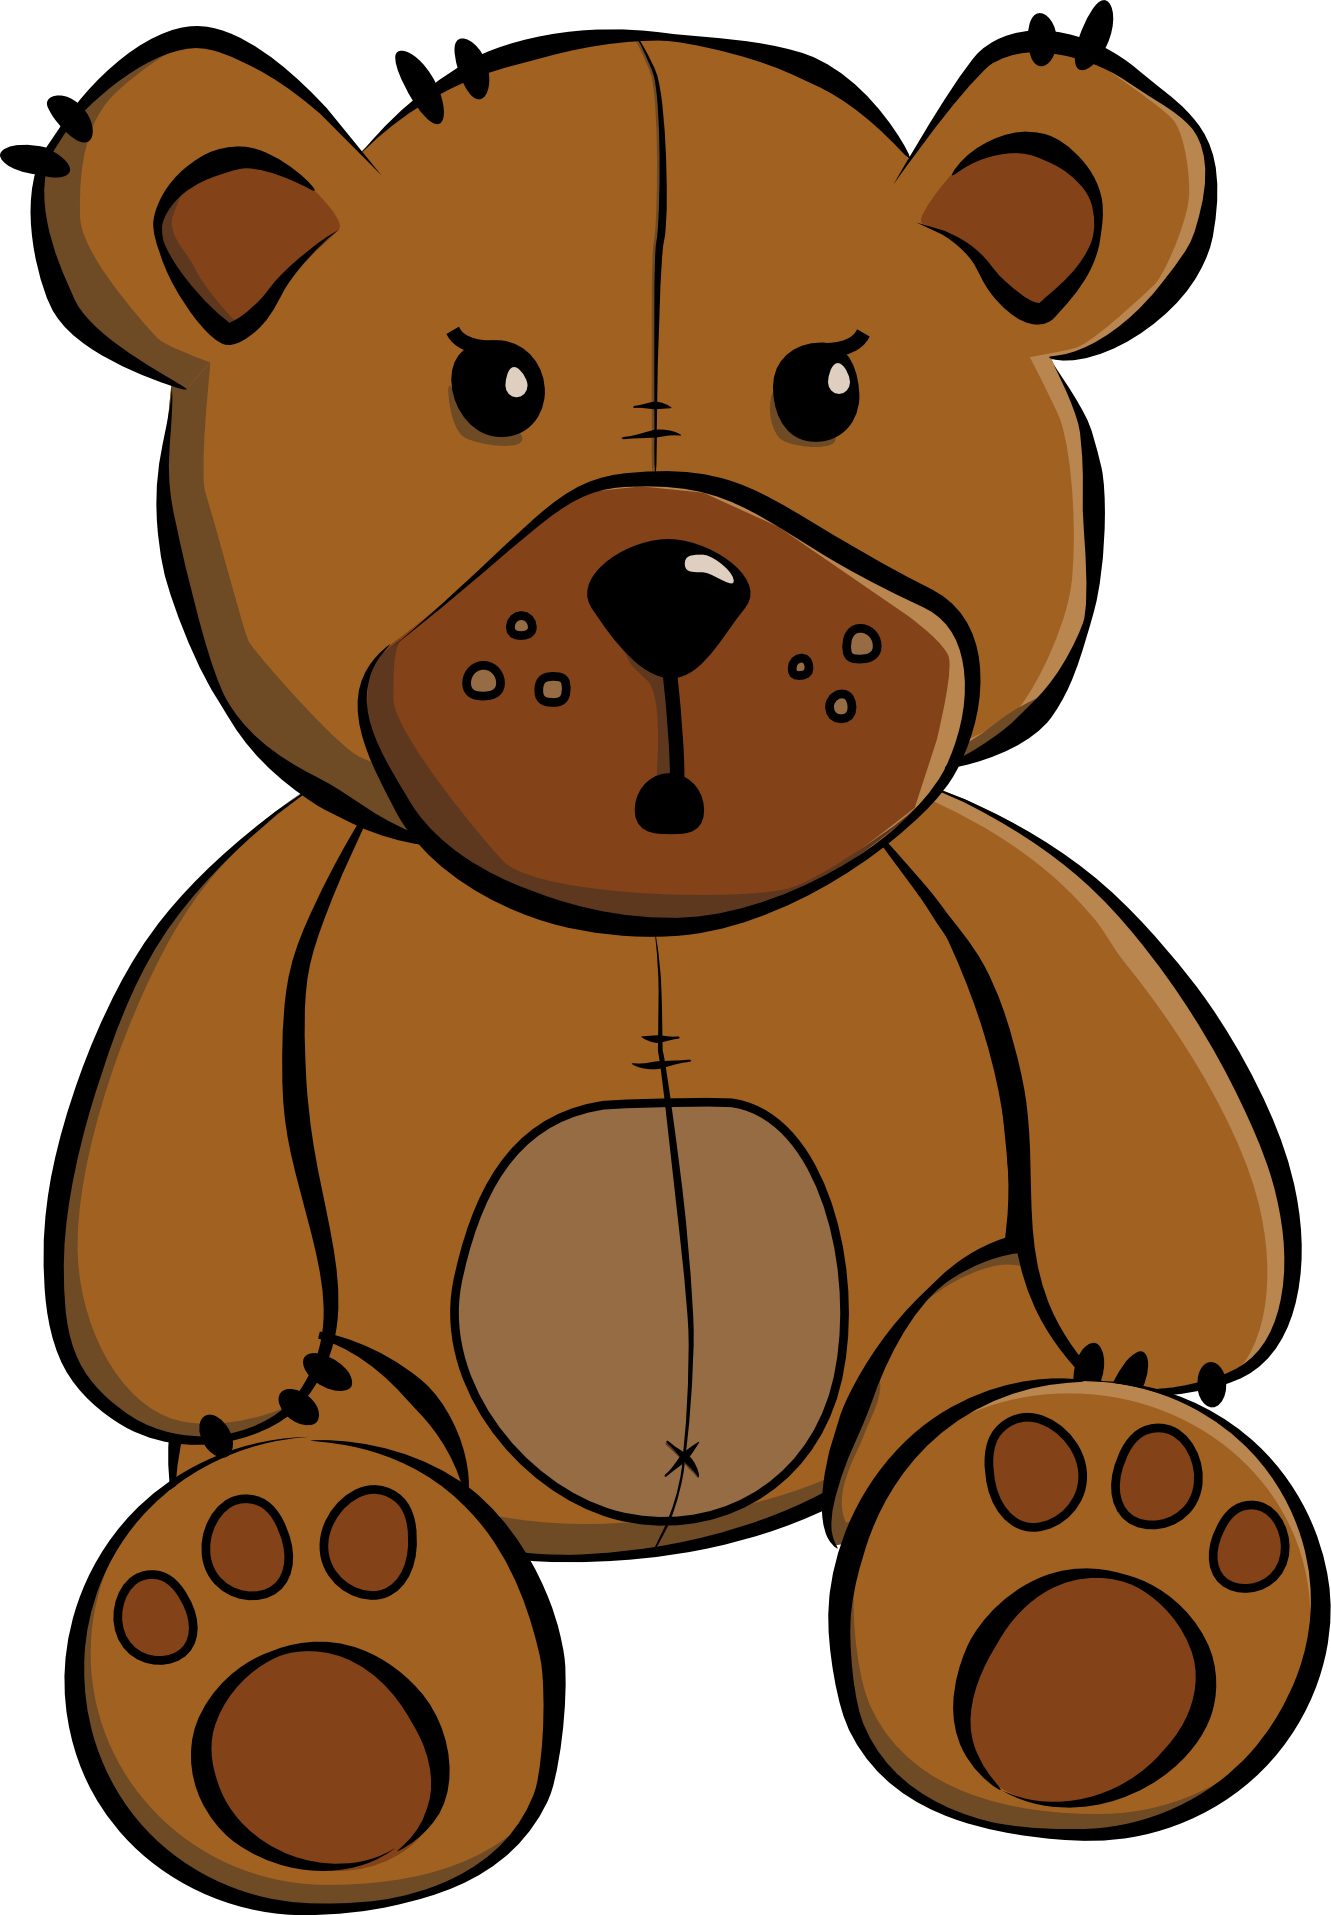 Bear halloween clipart picture royalty free Free Teddy Bear X Clipart picture royalty free